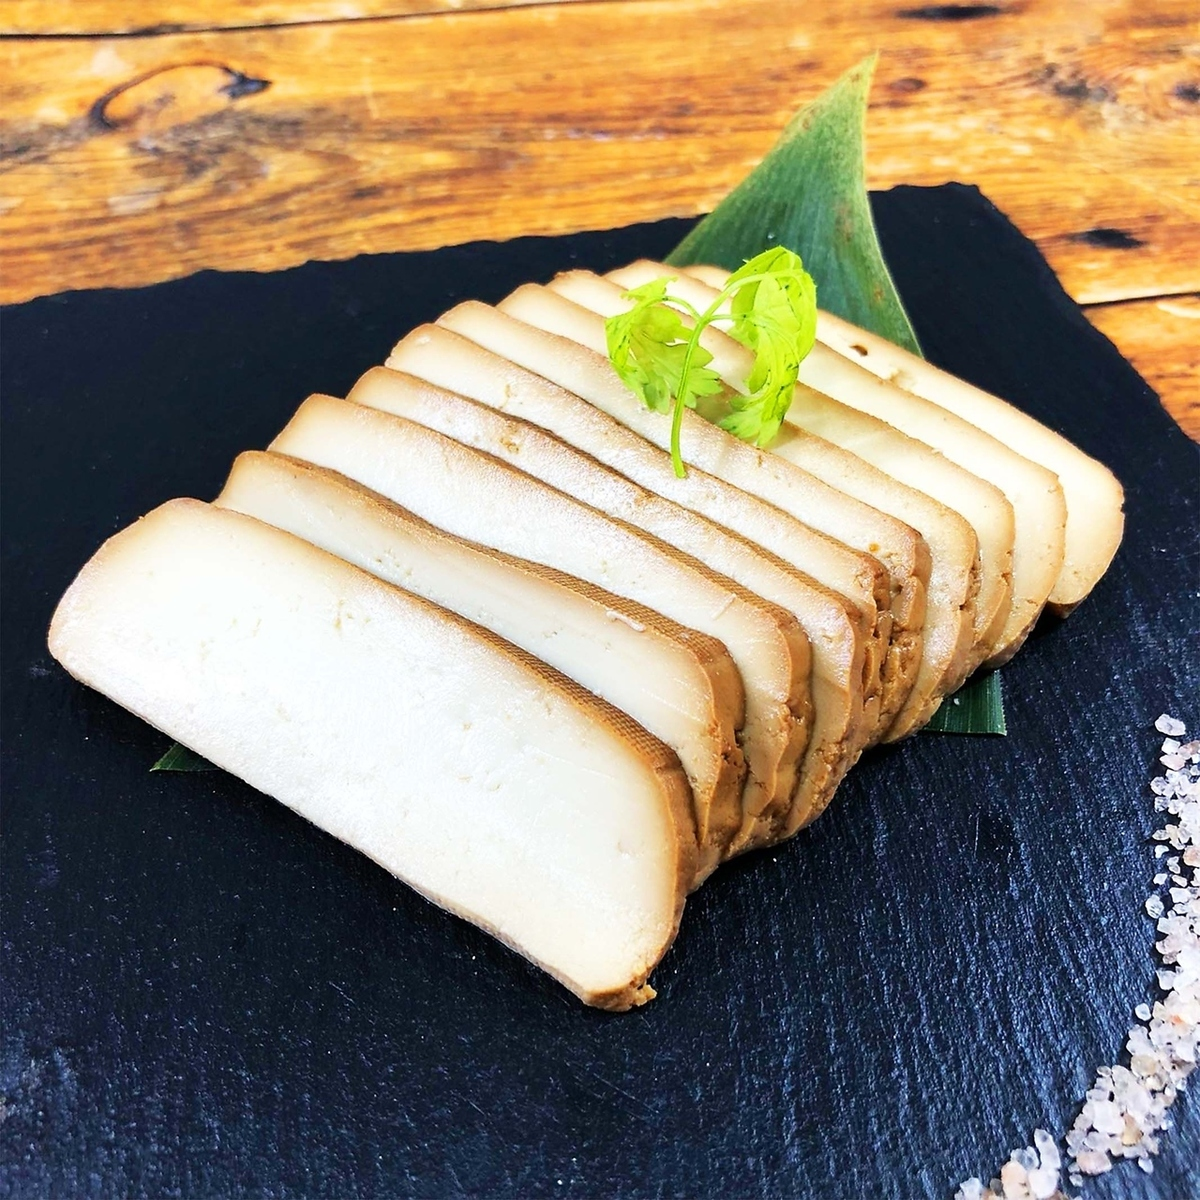 Smoked miso pickled tofu